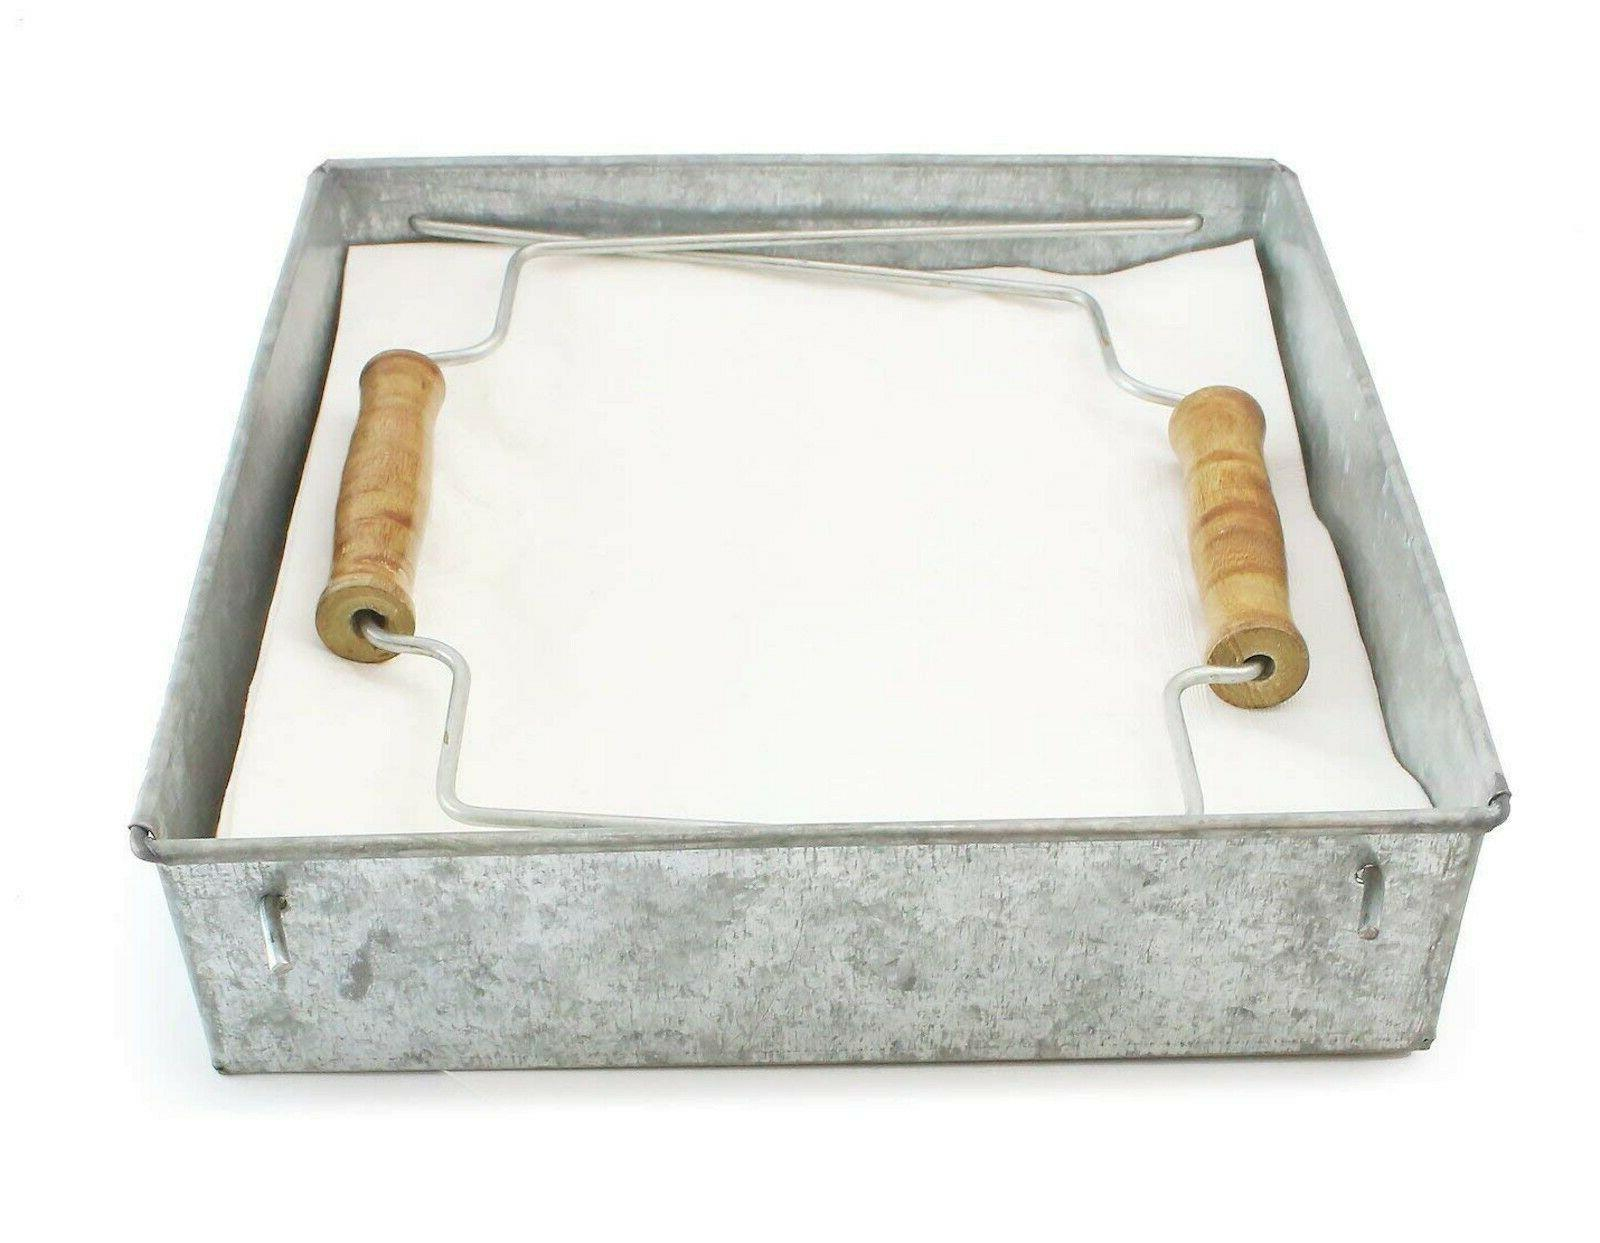 galvanized metal napkin holder kitchen accessory large